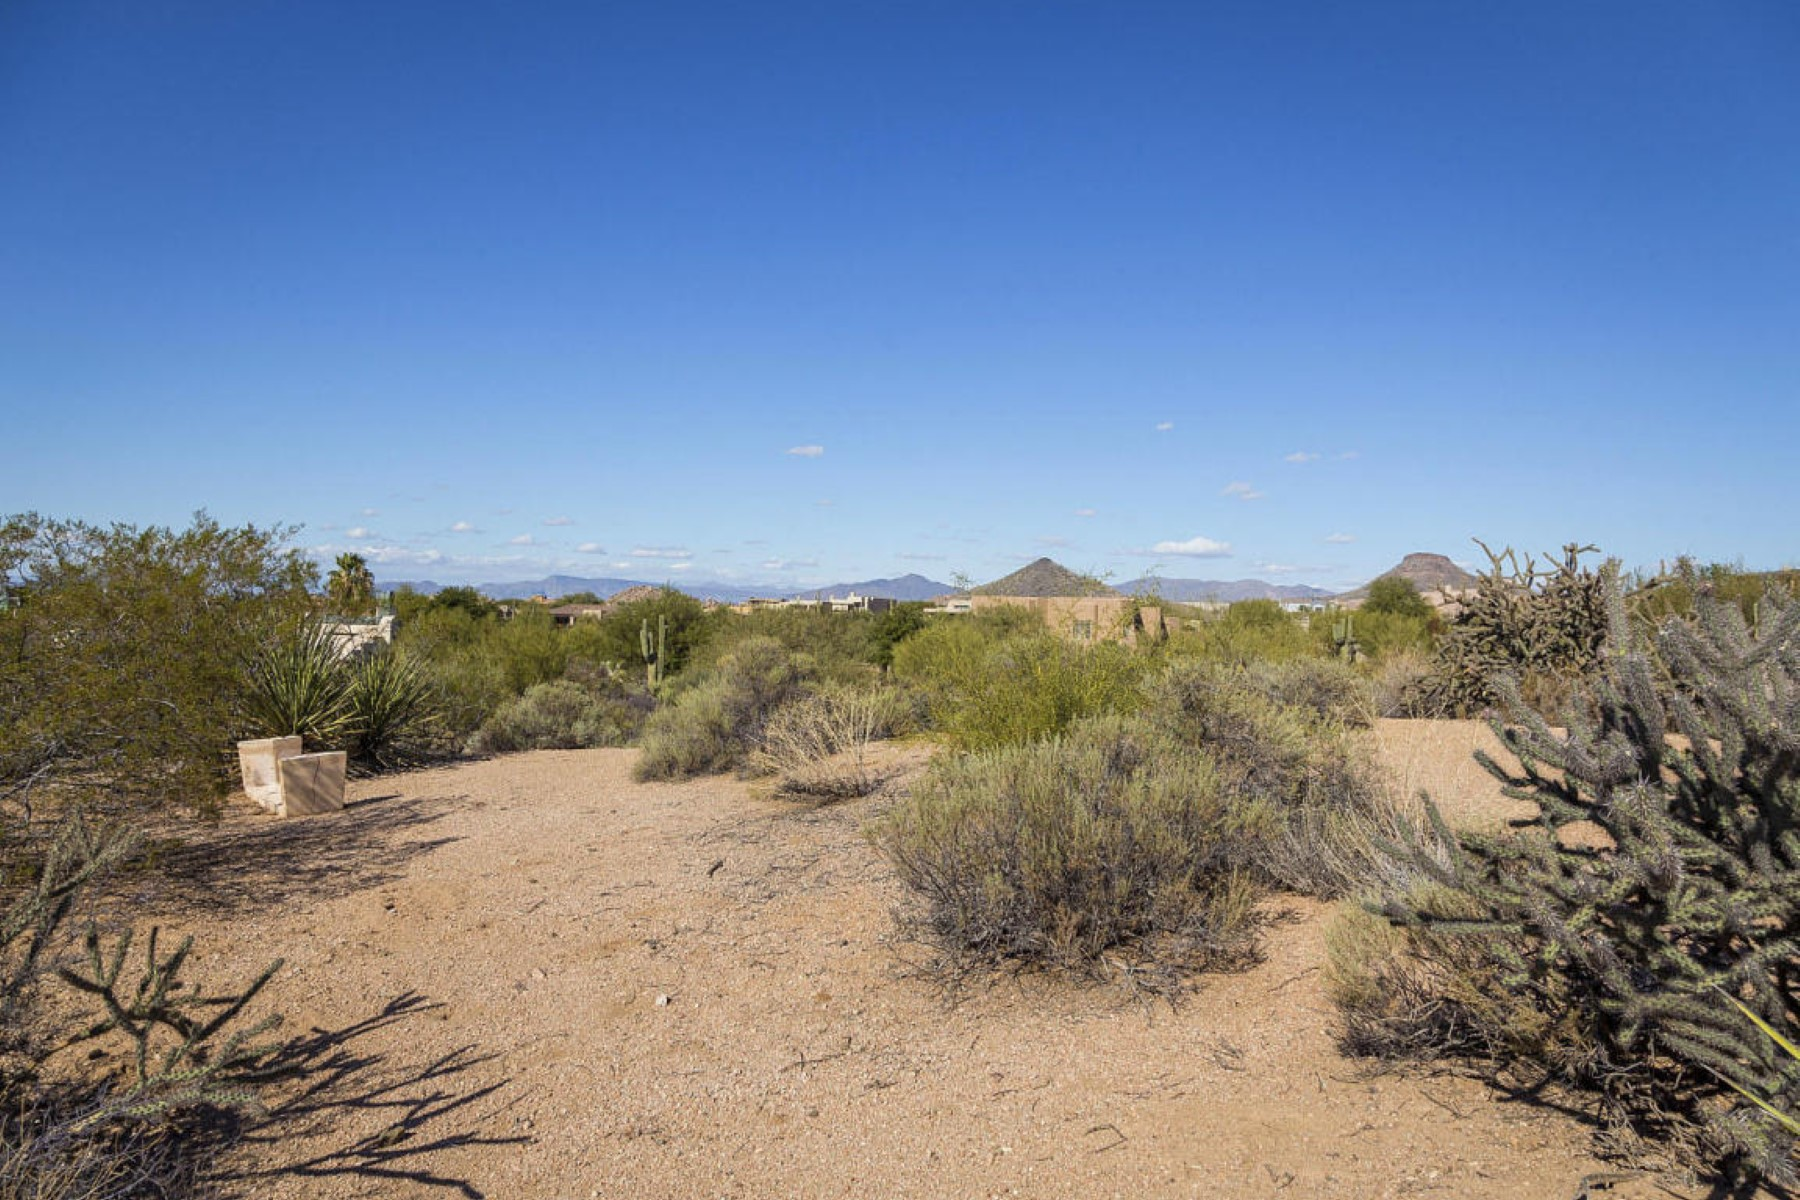 Terreno para Venda às Candlewood homesite on .66 acre lot offering view corridors of mountains 28932 N 106th Way #40 Scottsdale, Arizona, 85262 Estados Unidos